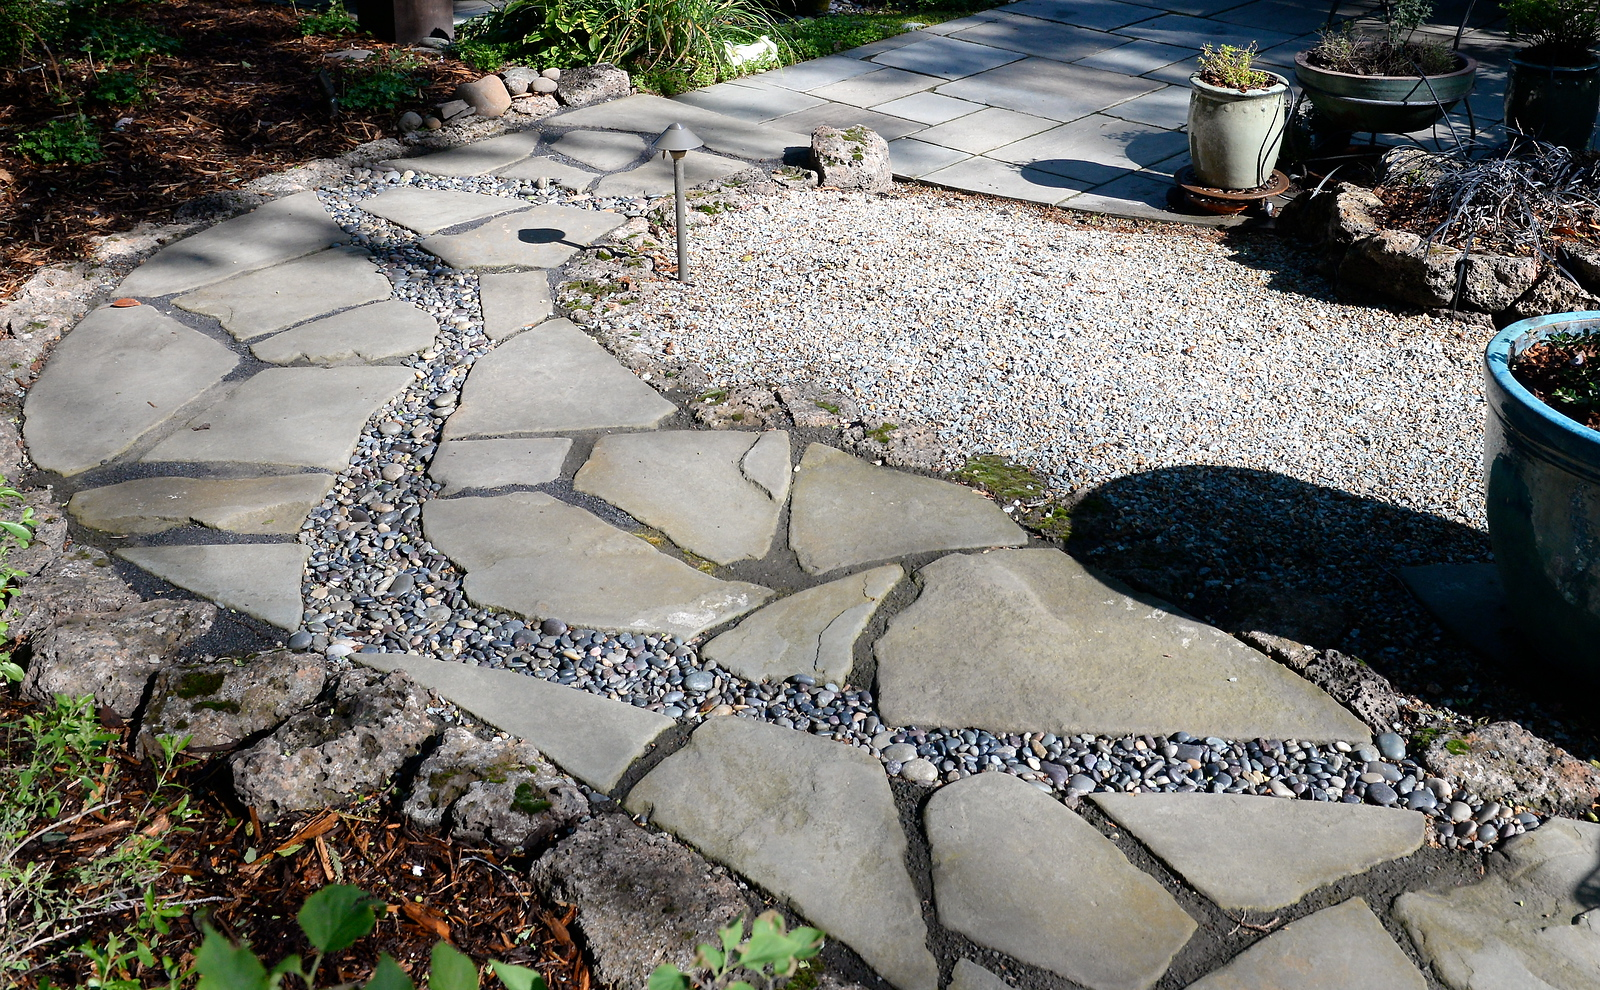 Stone and gravel walkways are seen during a tour of the garden at Ruth Guzley's residence in Chico, Calif. Friday April 14, 2017. This is one of the gardens that will be featured during the St. John Episcopal Church Garden Tour.  (Bill Husa -- Enterprise-Record)